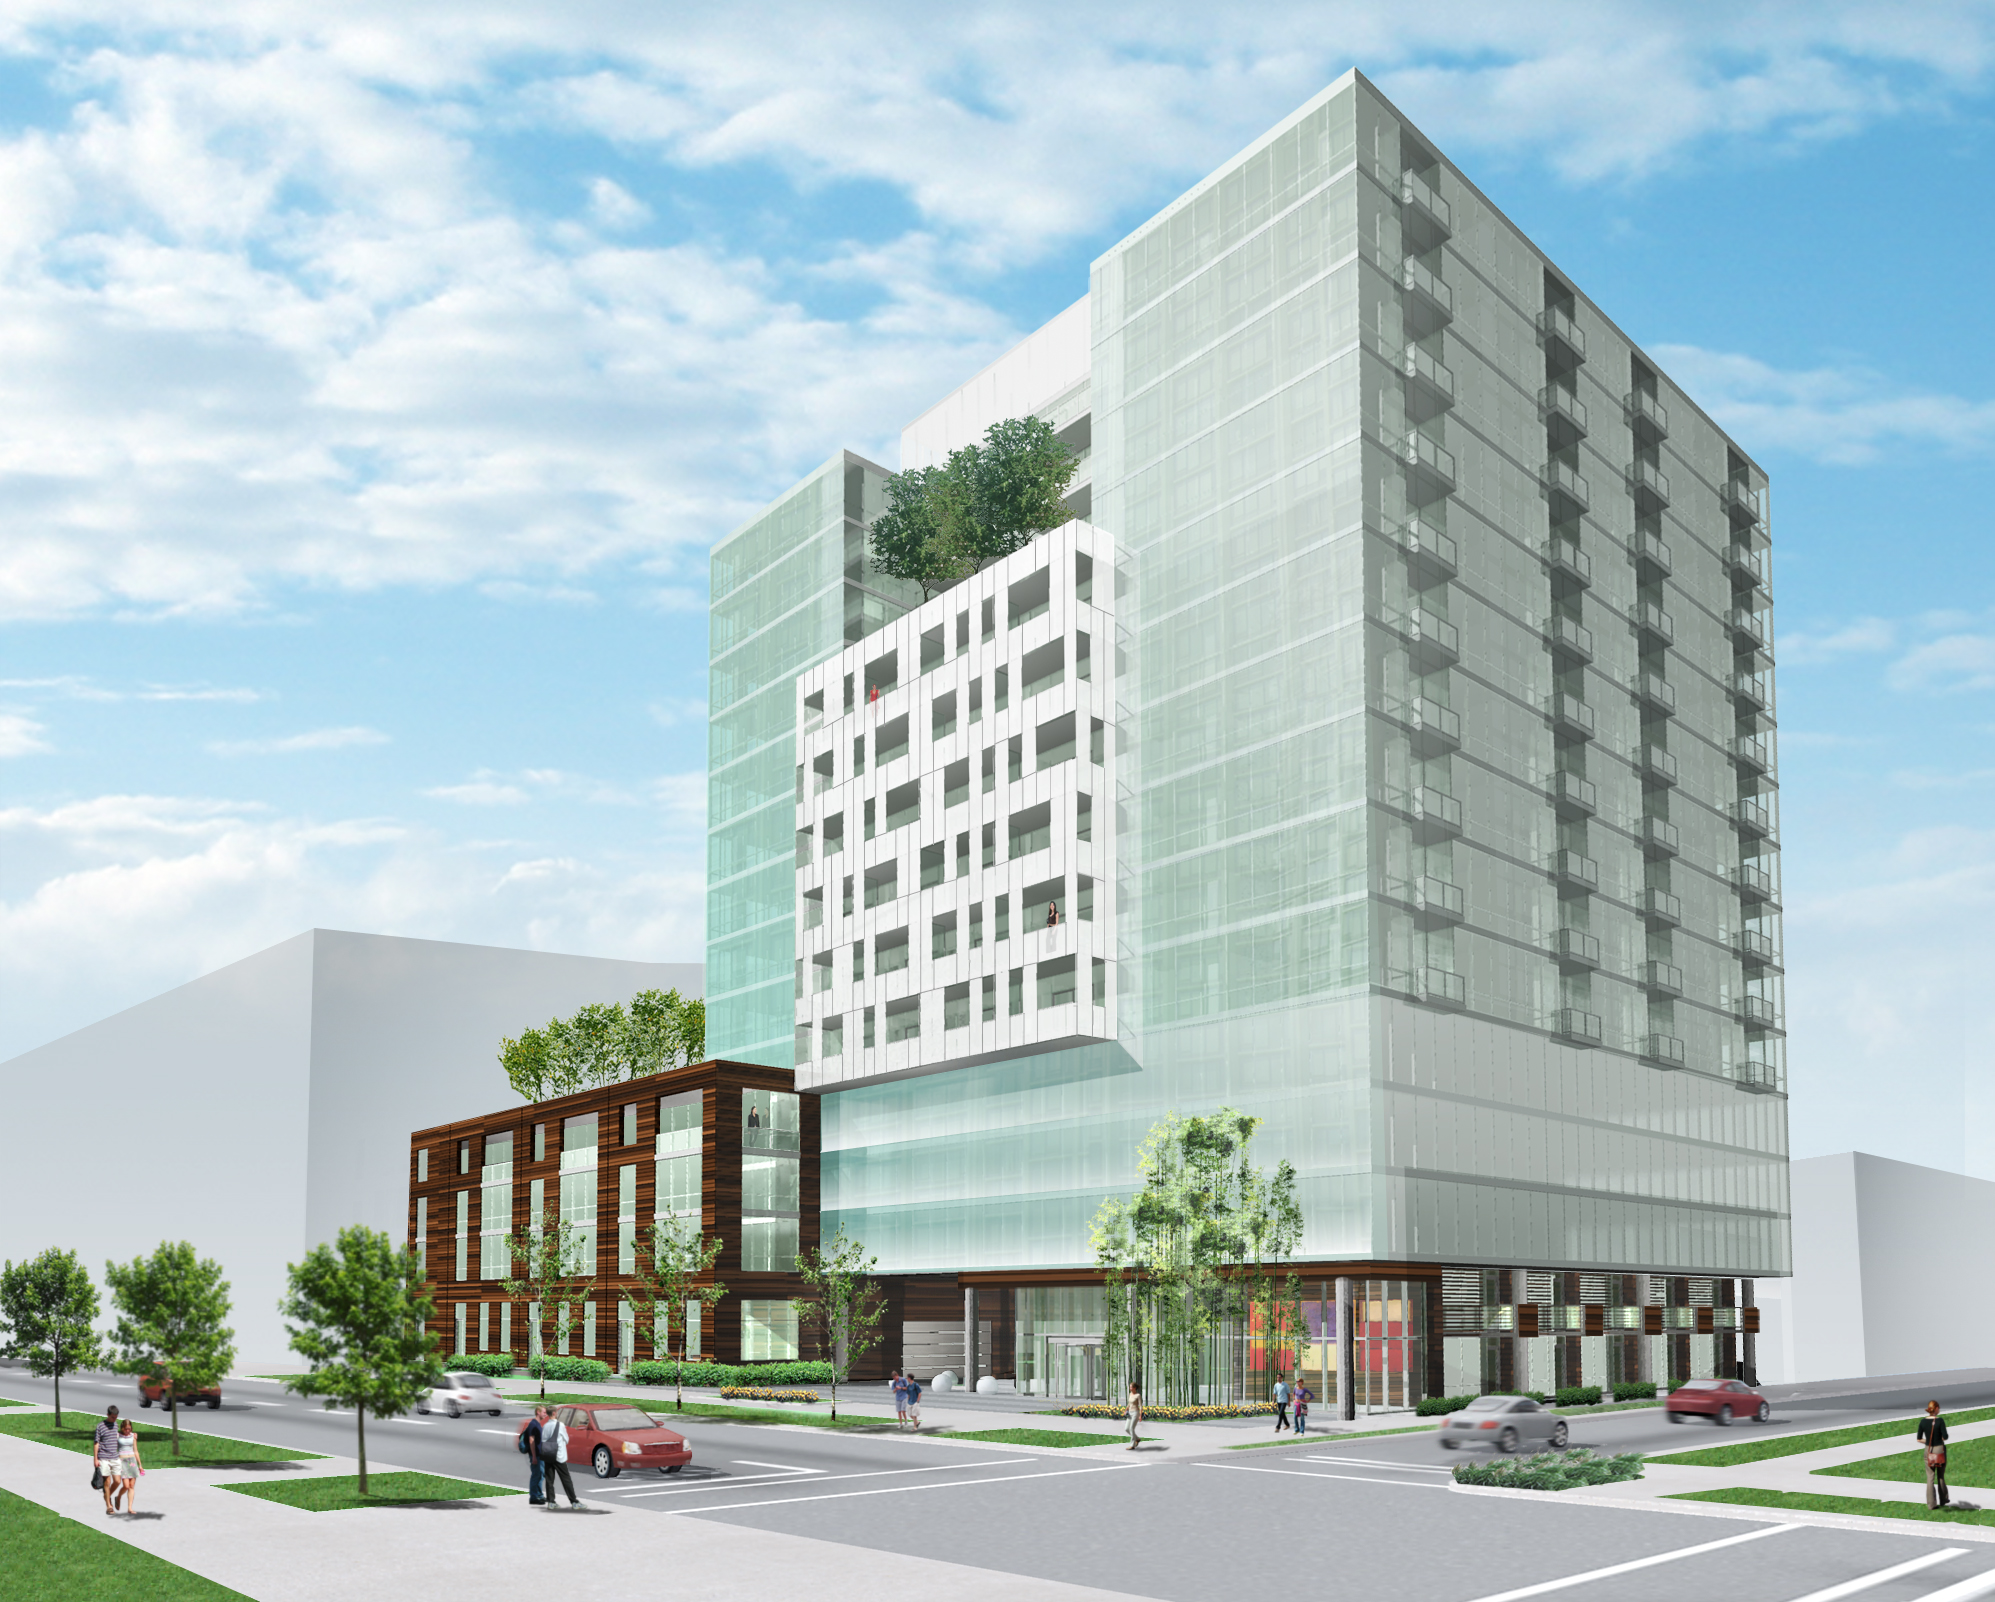 A closer look at the new design for 5440 Sheridan